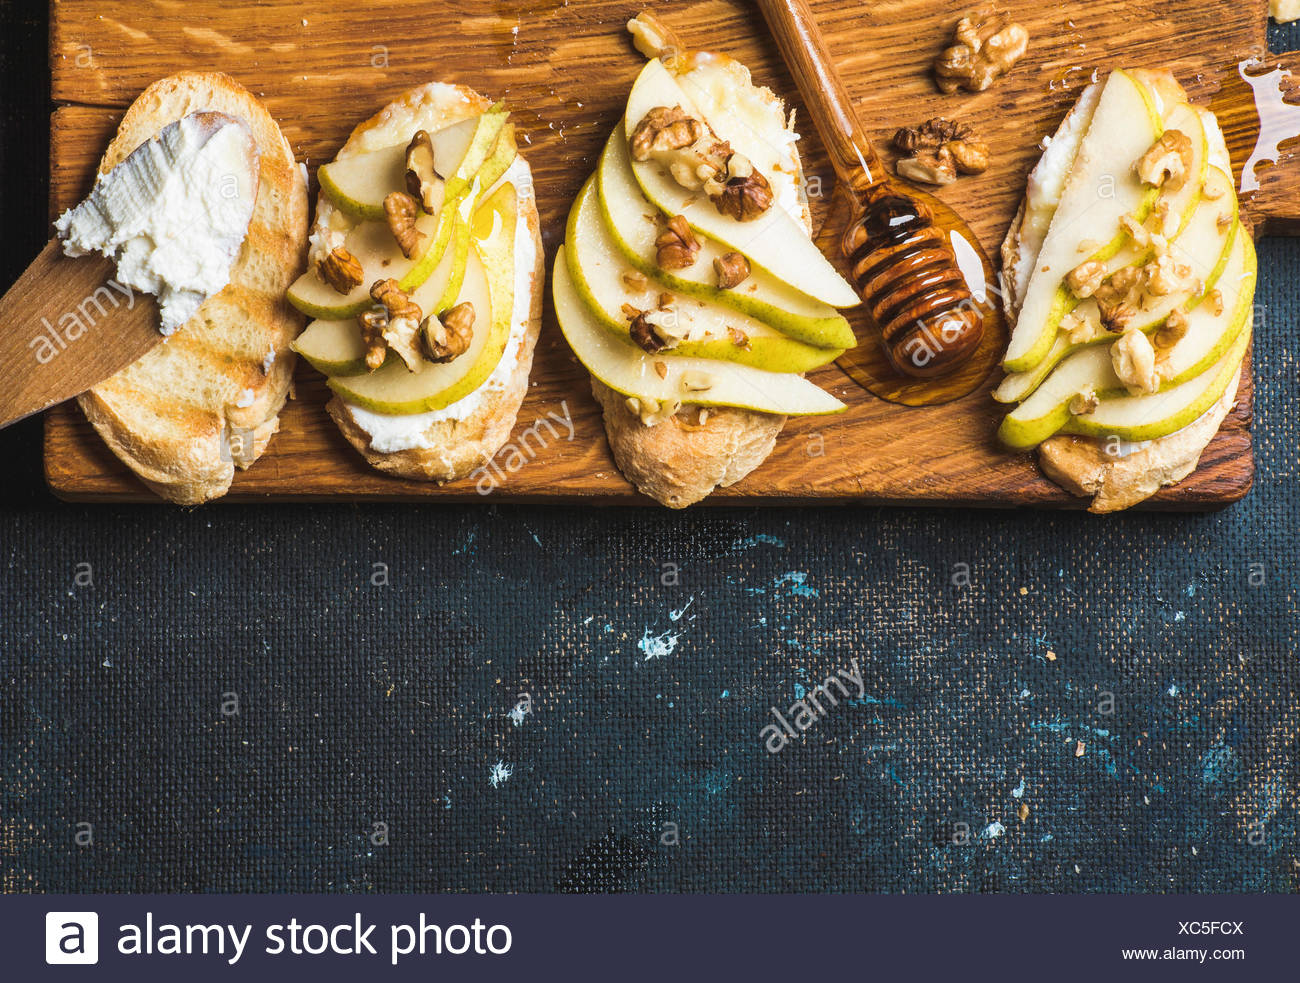 Crostini with pear, ricotta cheese, honey and walnuts. Breakfast toasts or snack sandwiches on rustic wooden board over dark blu - Stock Image